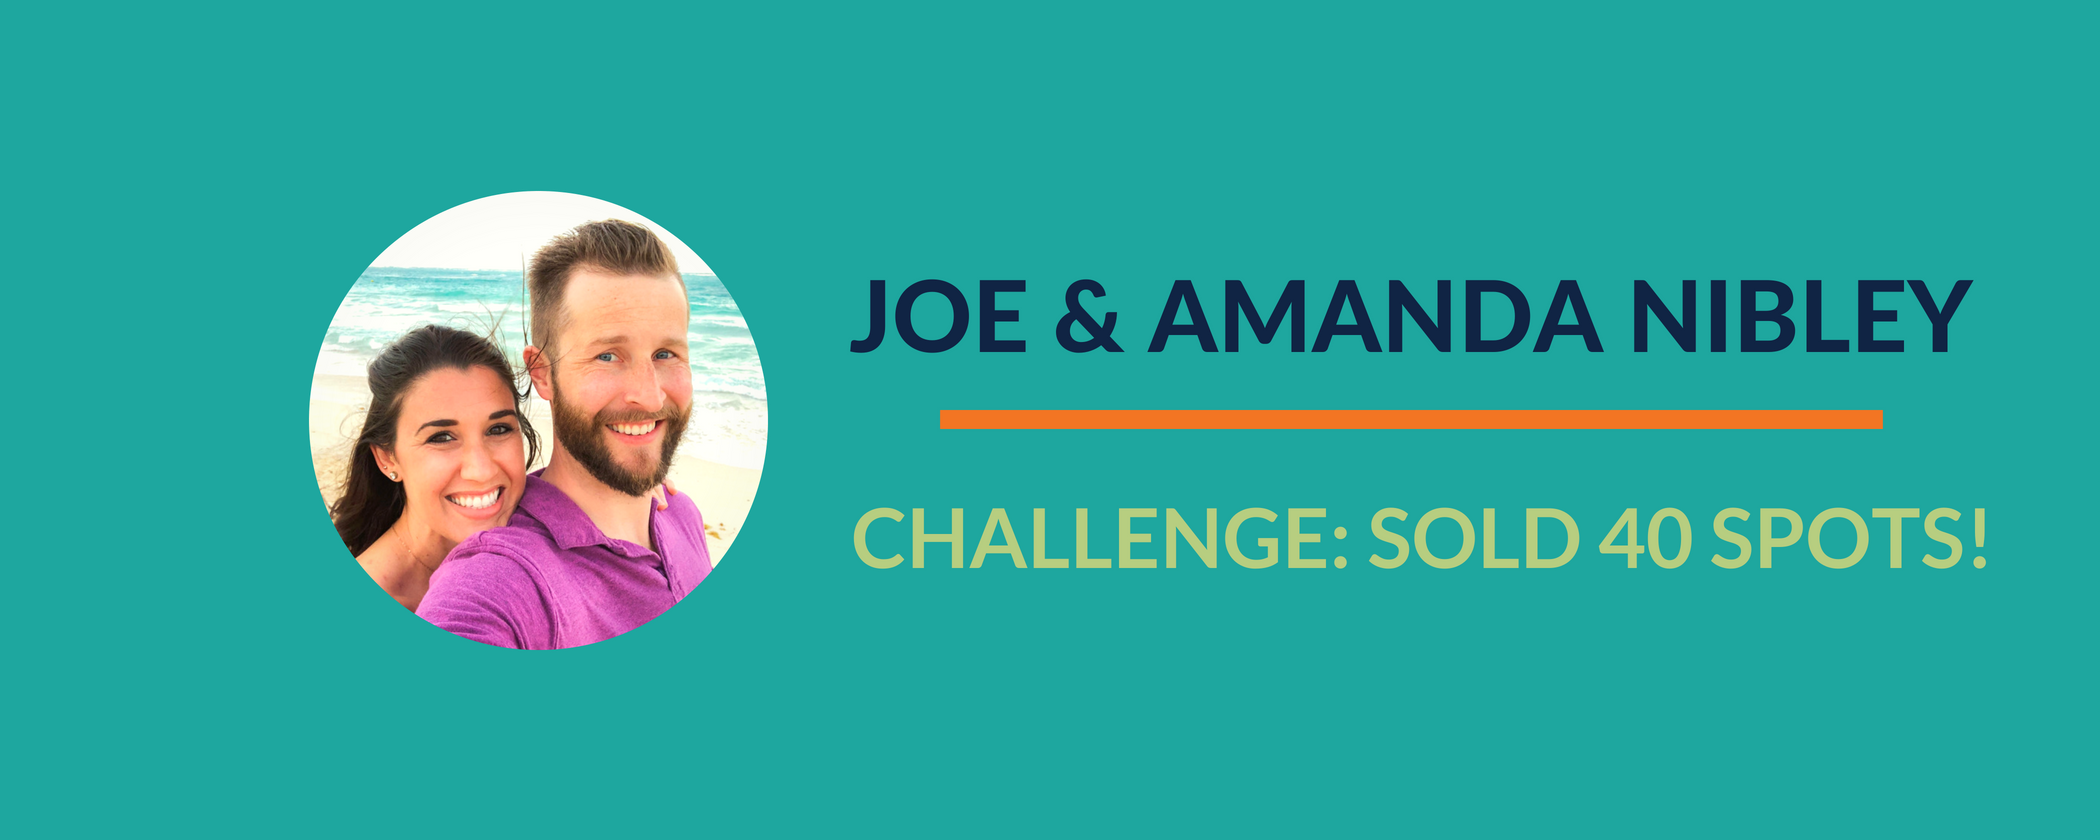 Success Story: Joe & Amanda Nibley sold 40 spots for their healthy eats challenge!